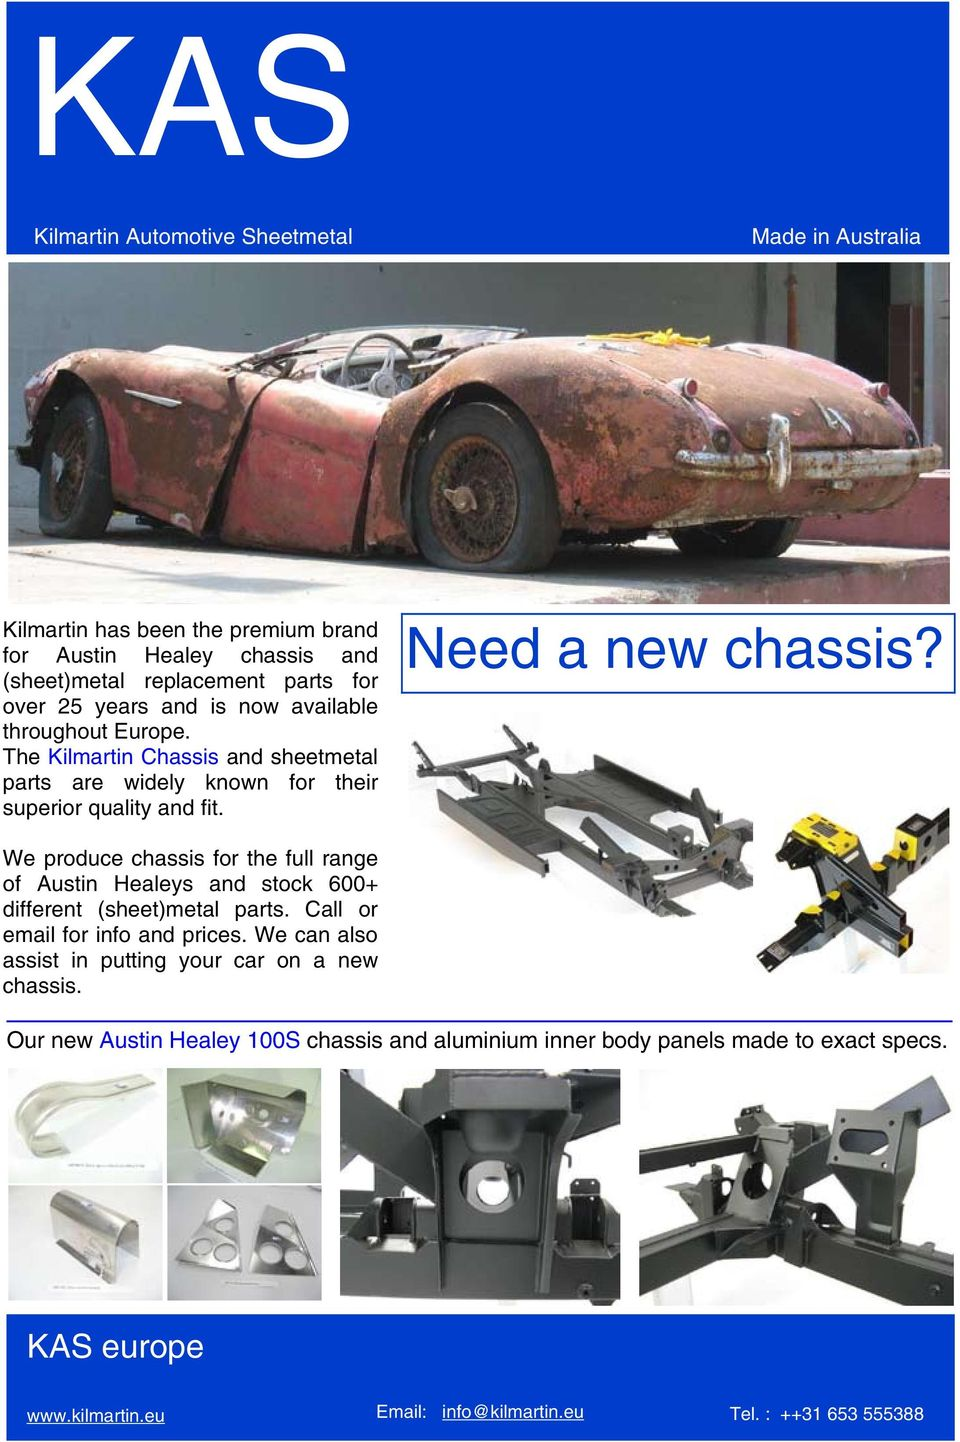 We produce chassis for the full range of Austin Healeys and stock 600+ different (sheet)metal parts. Call or email for info and prices.